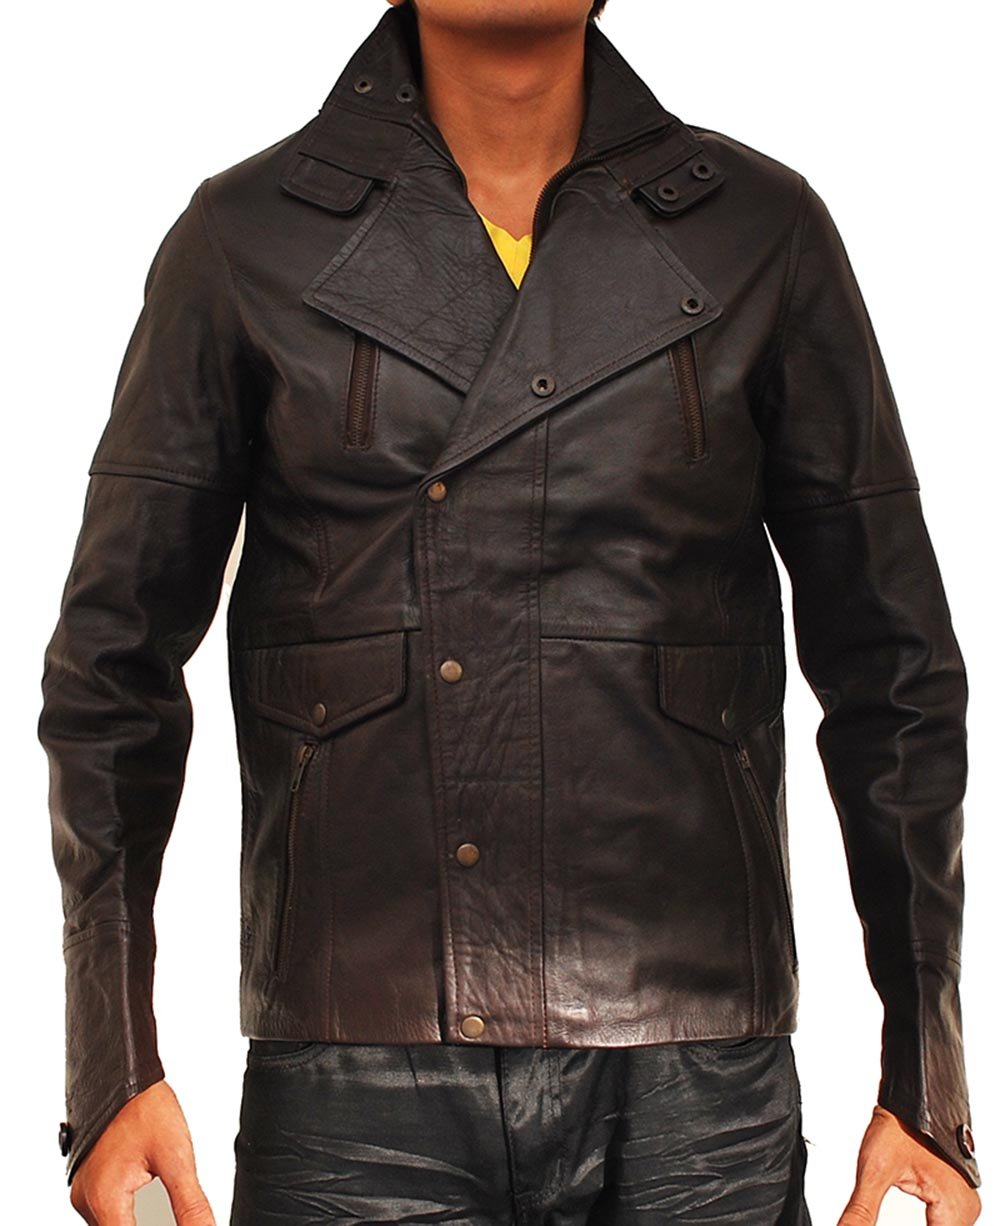 John Travolta From Paris With Love Leather Jacket by MPASSIONS (Image #1)